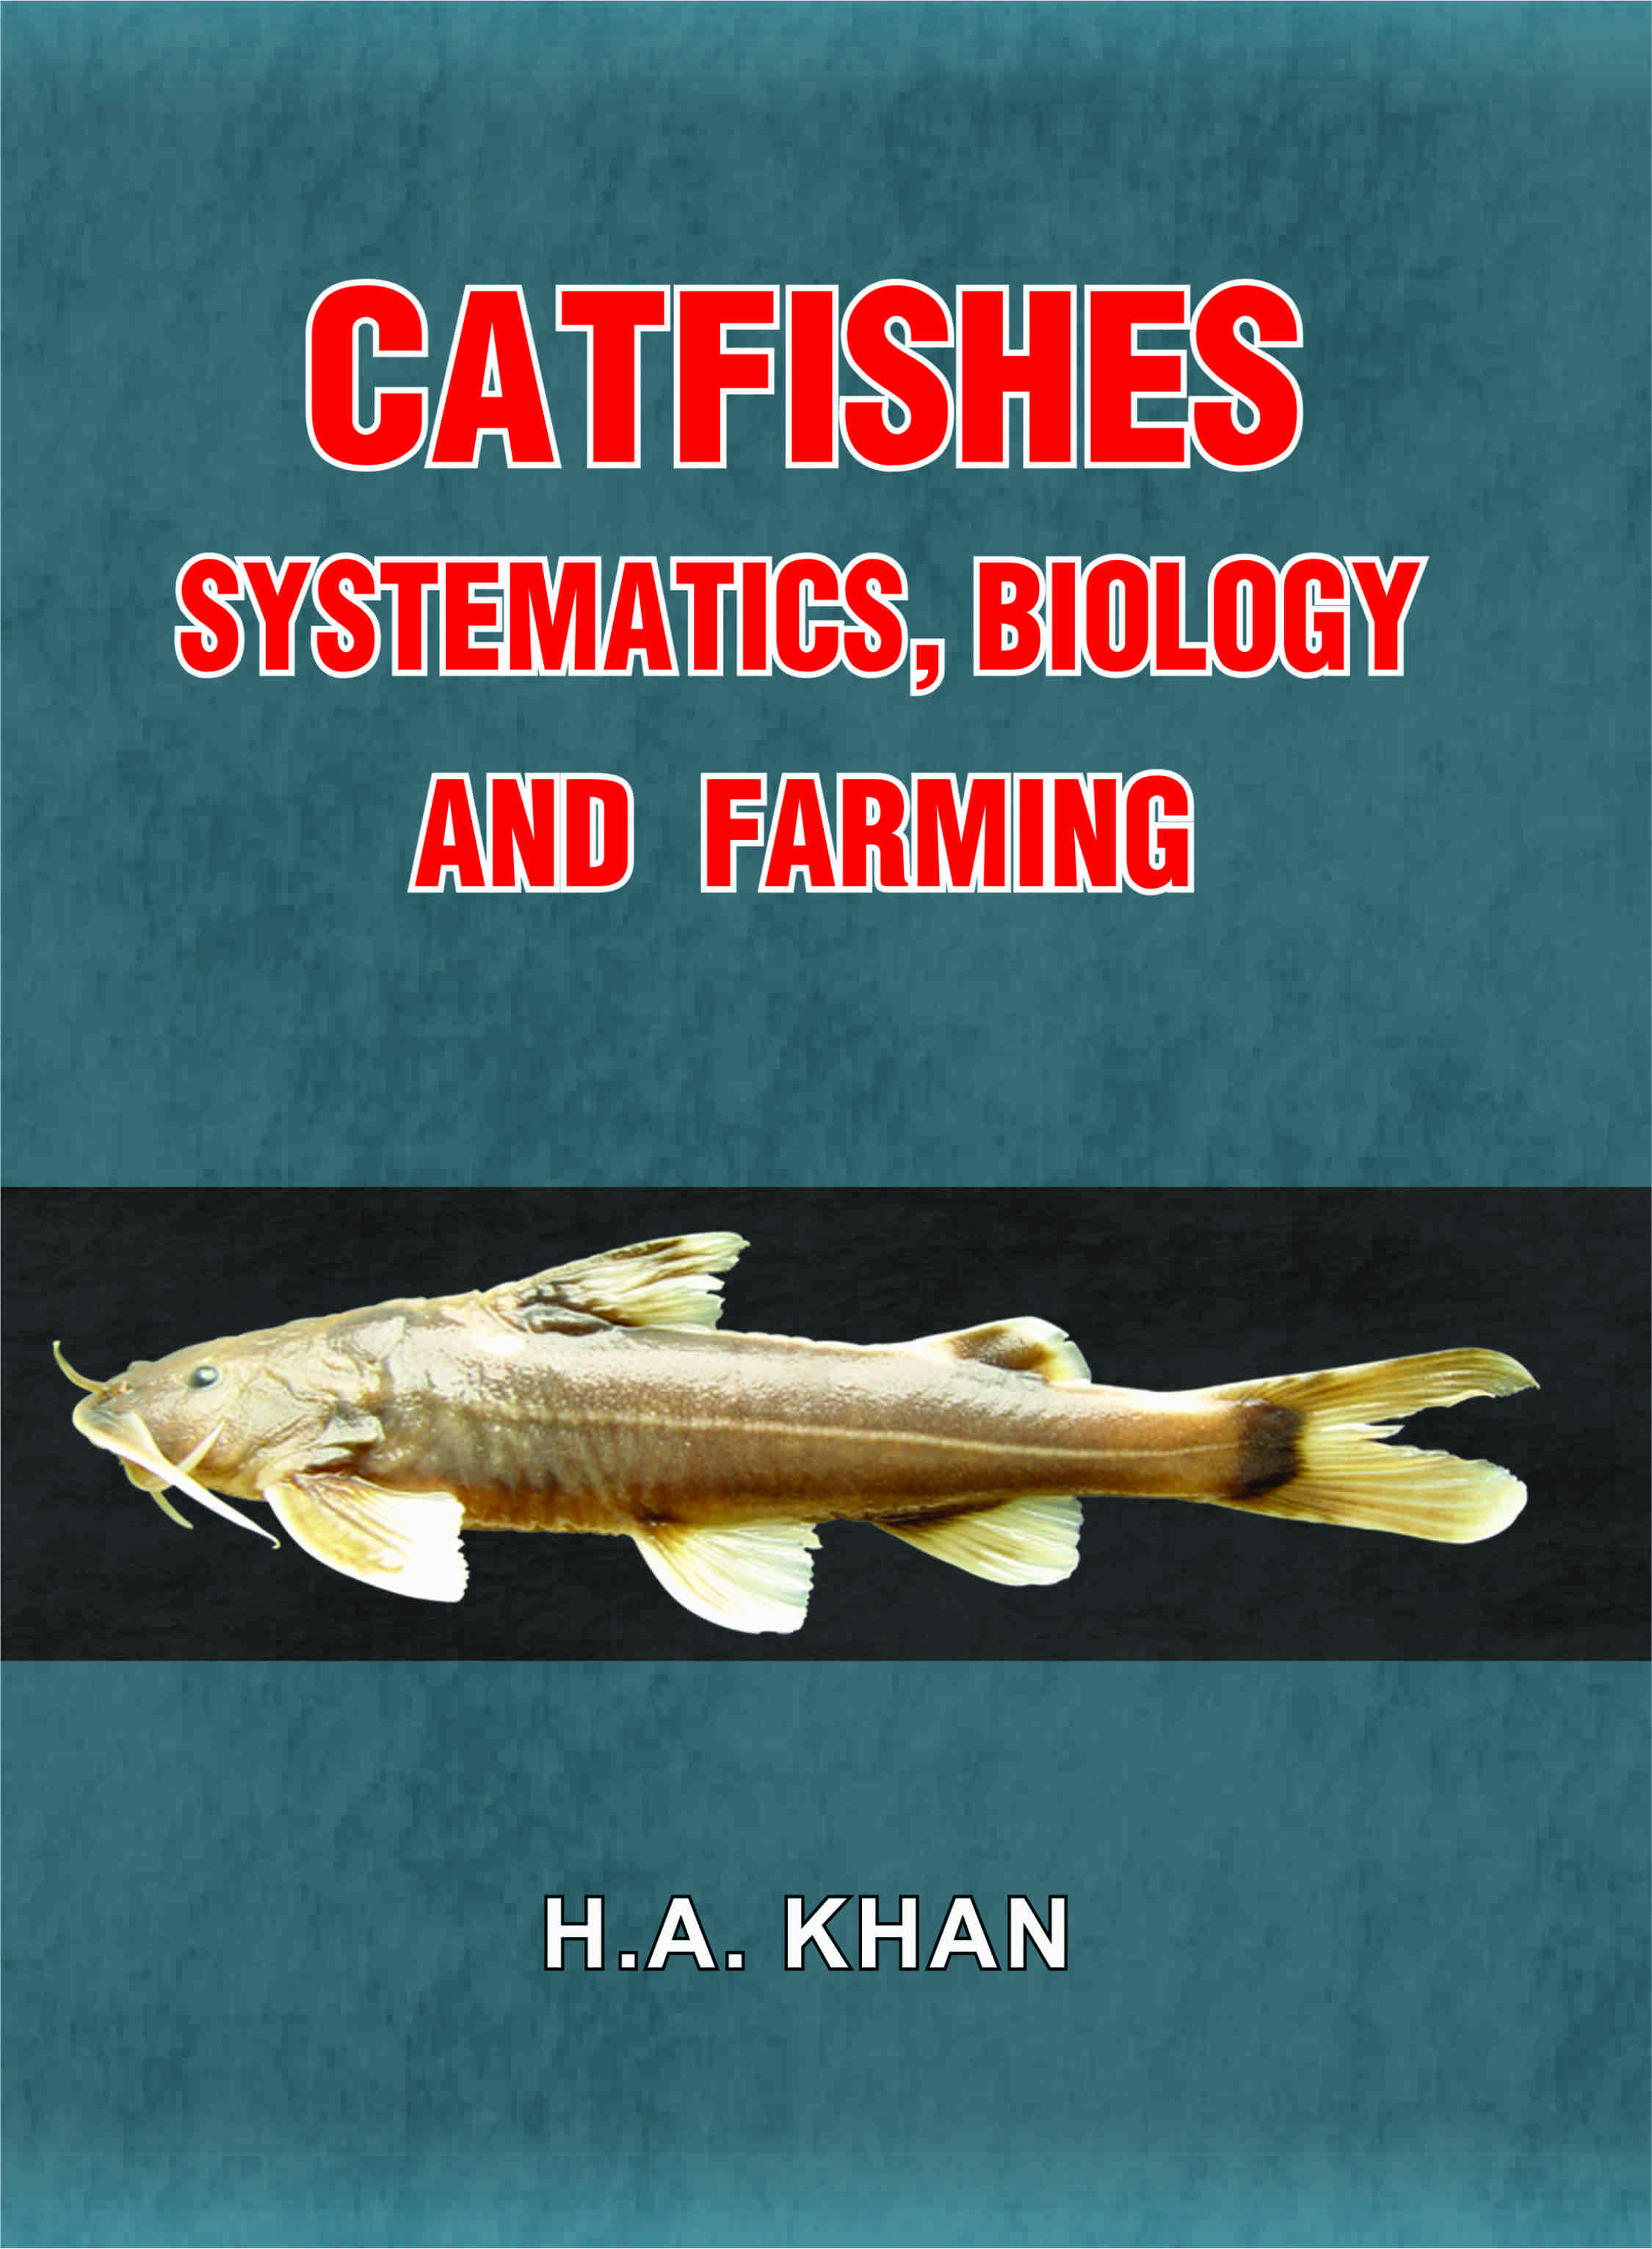 CATFISHES Systematics, Biology & Farming